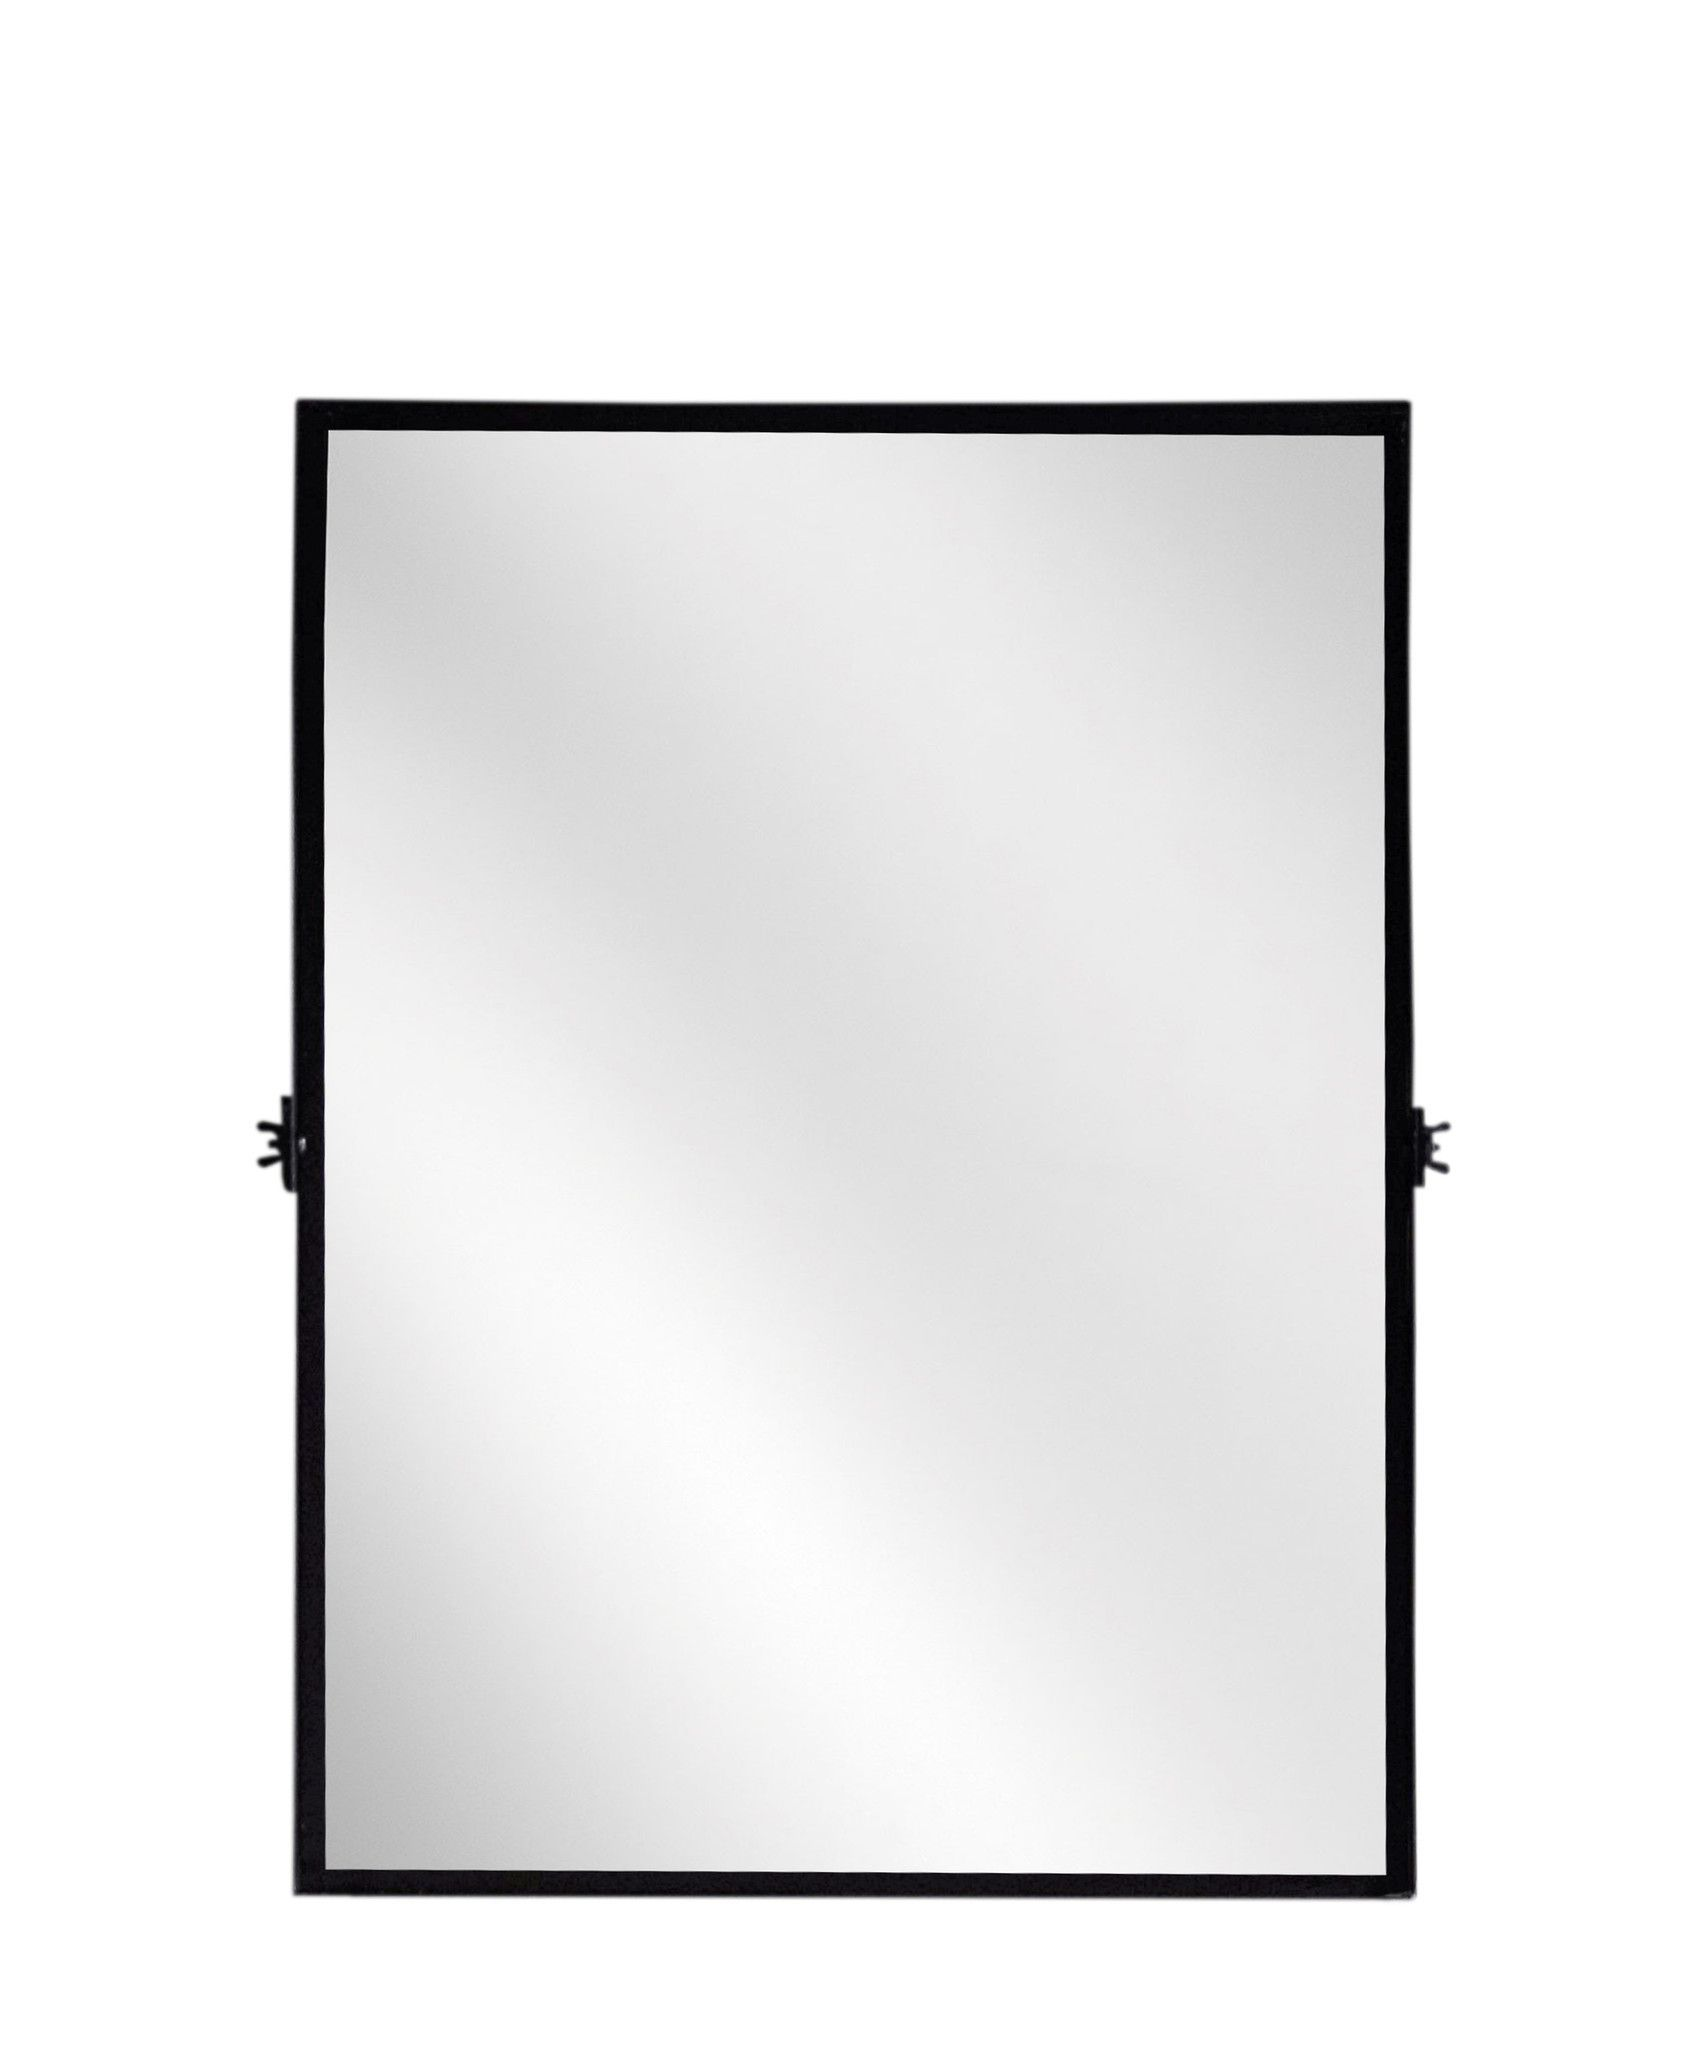 Rectangular Pivot Mirror Black Bathroom Mirrors Bathroom Mirror Lights Simple Bathroom Renovation